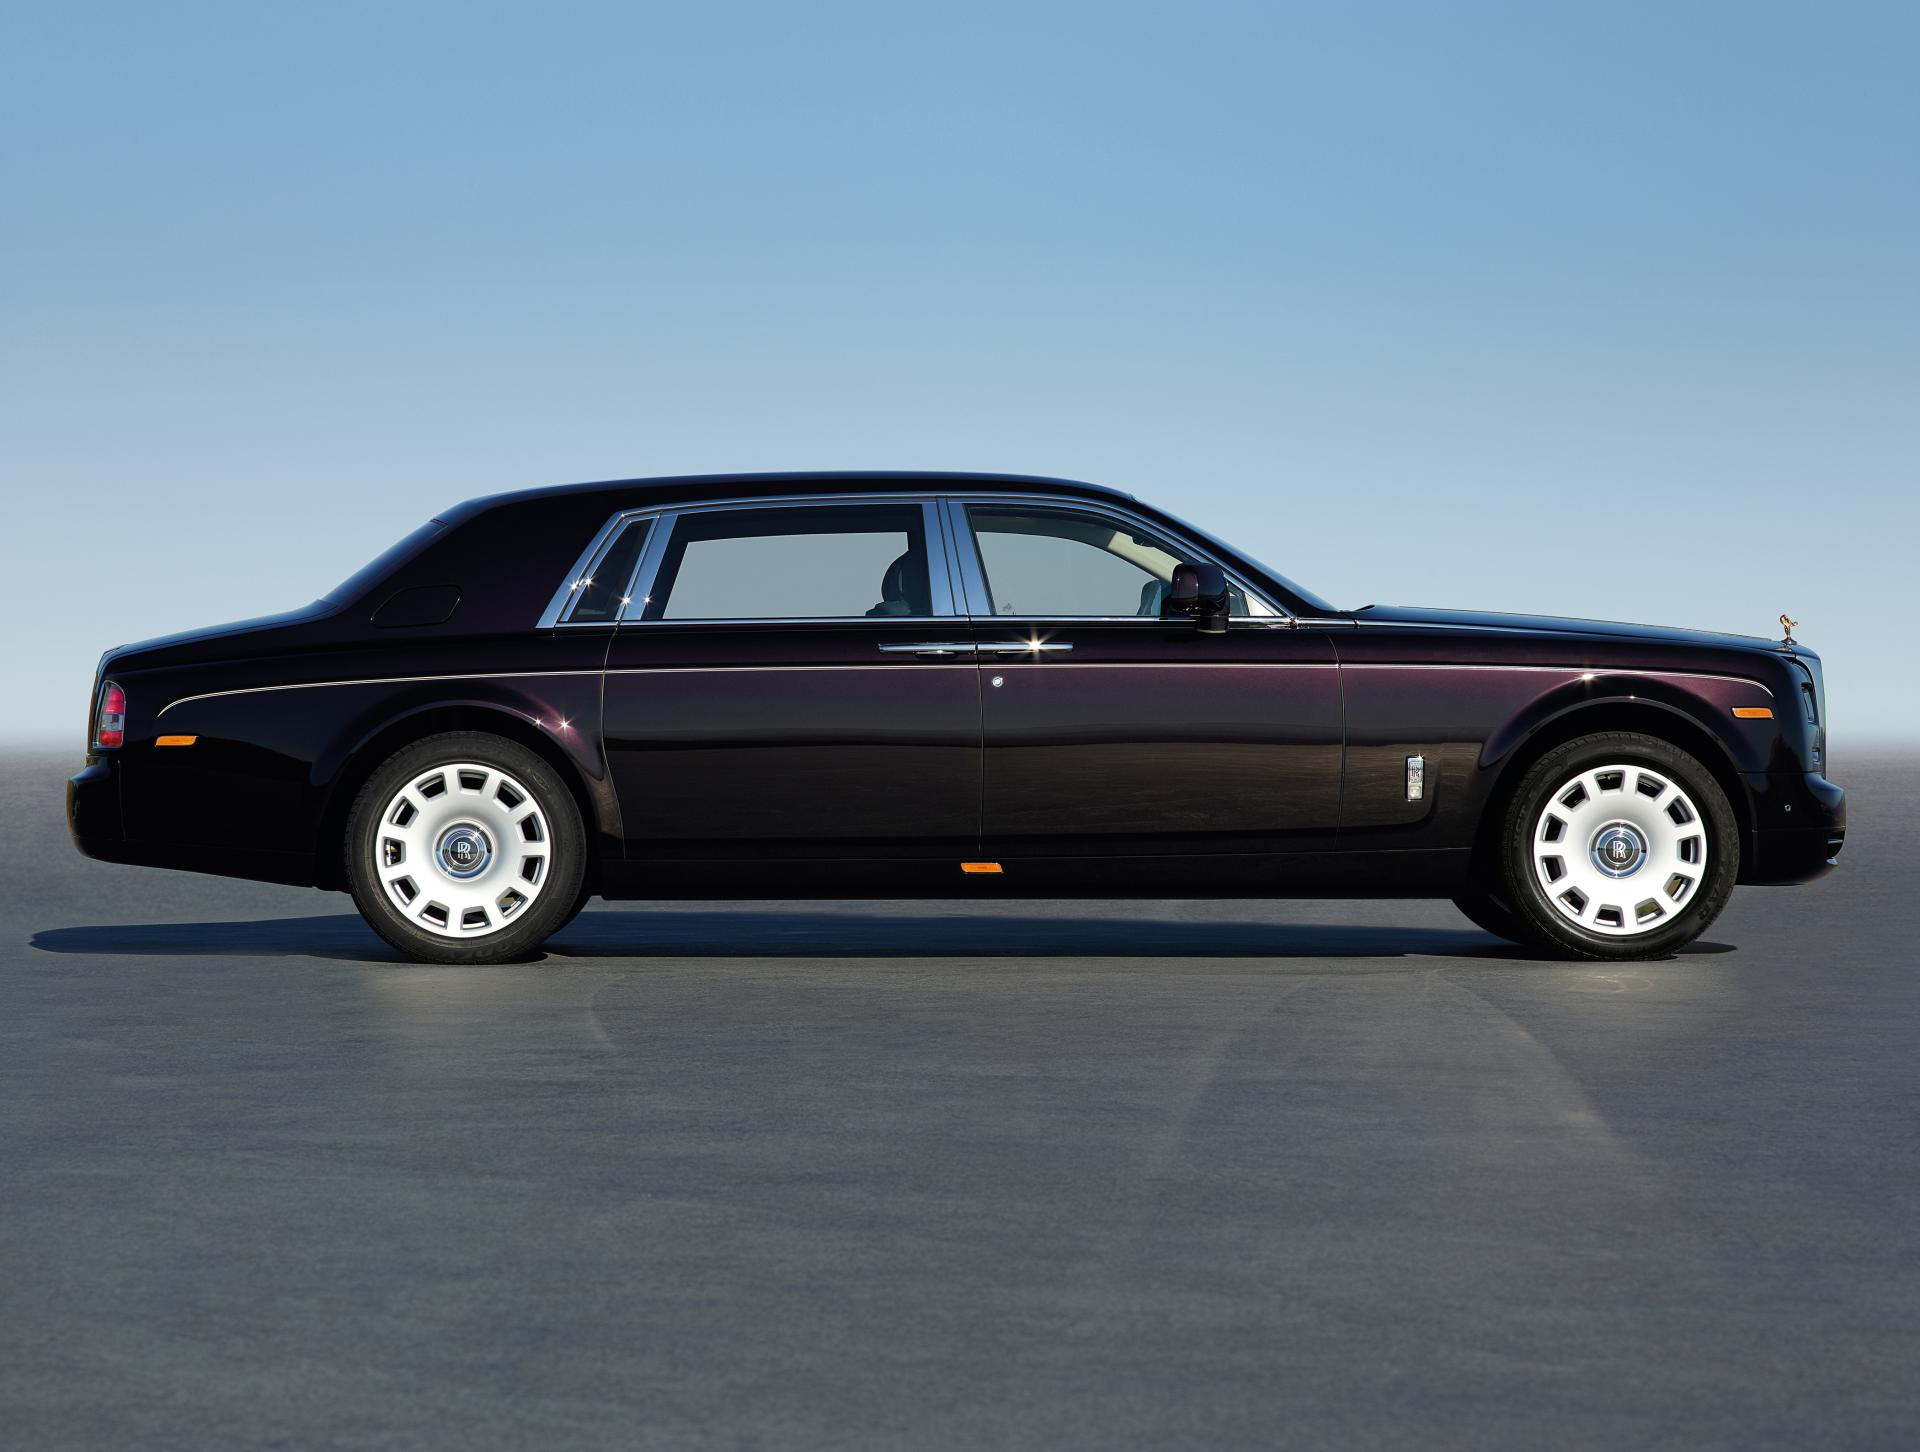 2013 Rolls royce Phantom #12